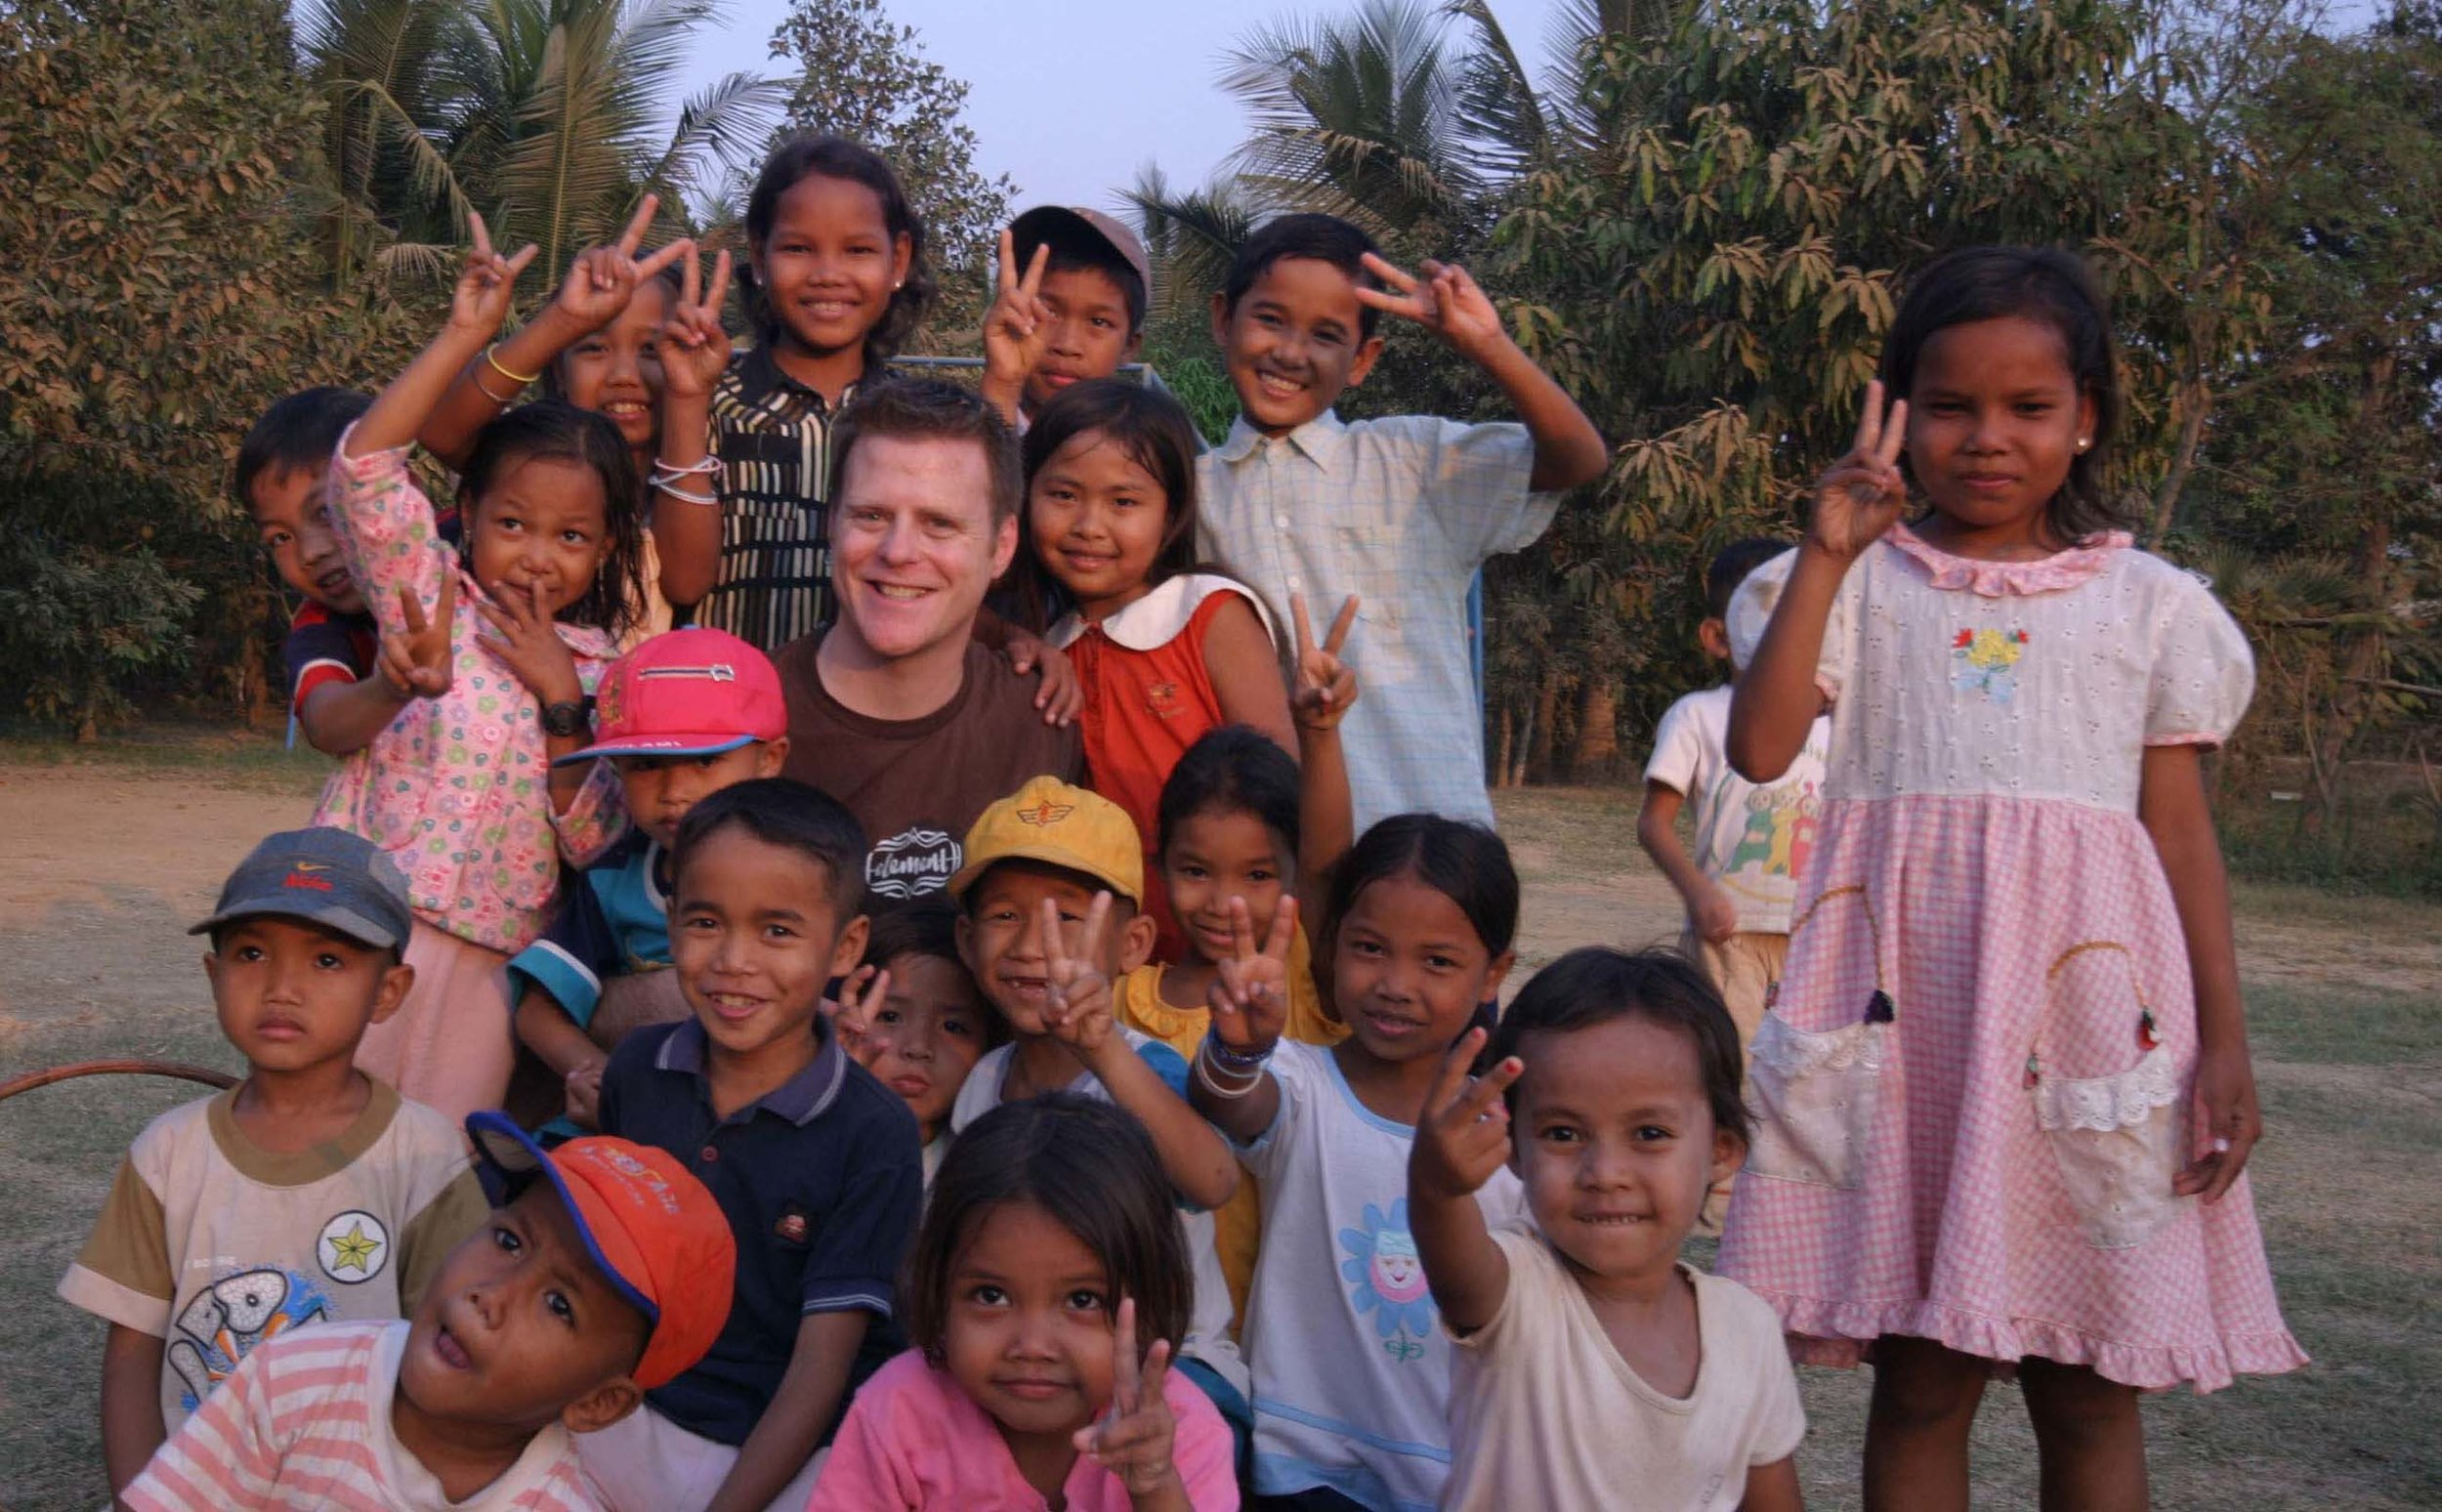 Me in February 2005, at our very first home in Battambang, Cambodia. Most — if not all — of these kids are now grown.